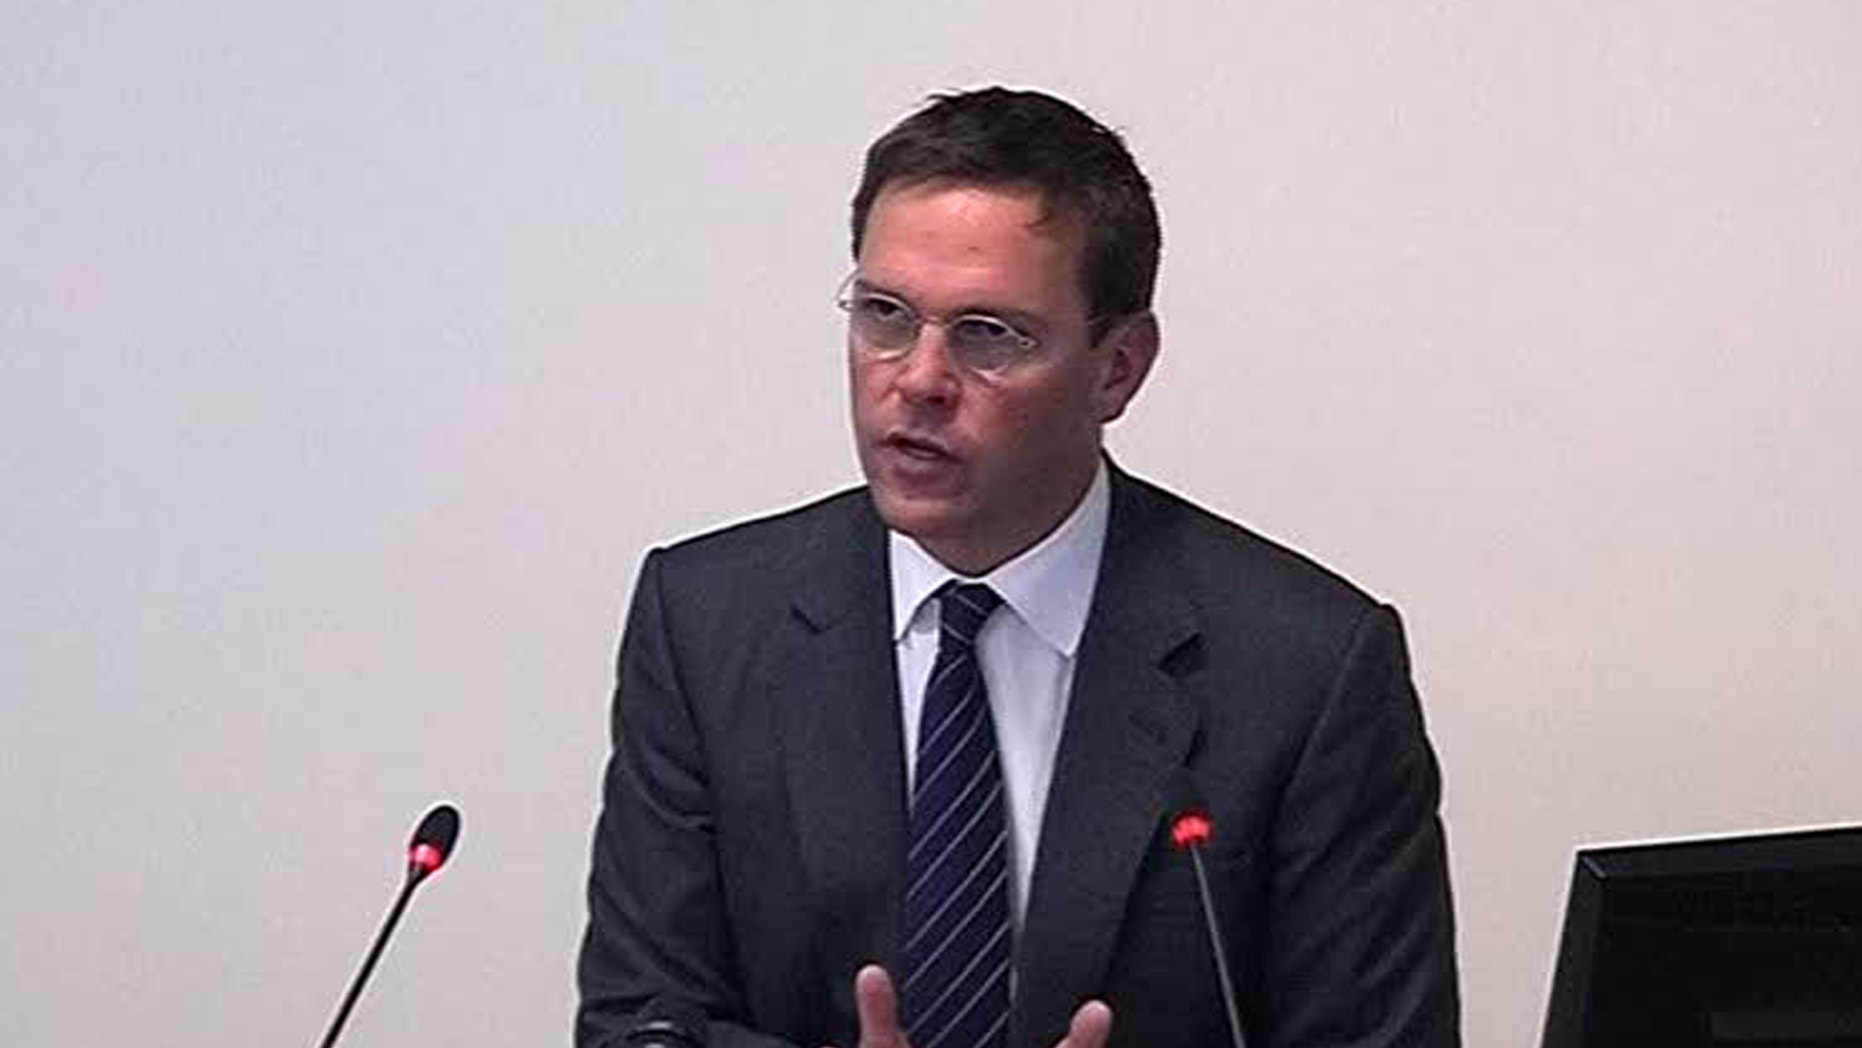 April 24, 2012: Former News International chairman James Murdoch appears at Lord Justice Brian Leveson's inquiry in London.